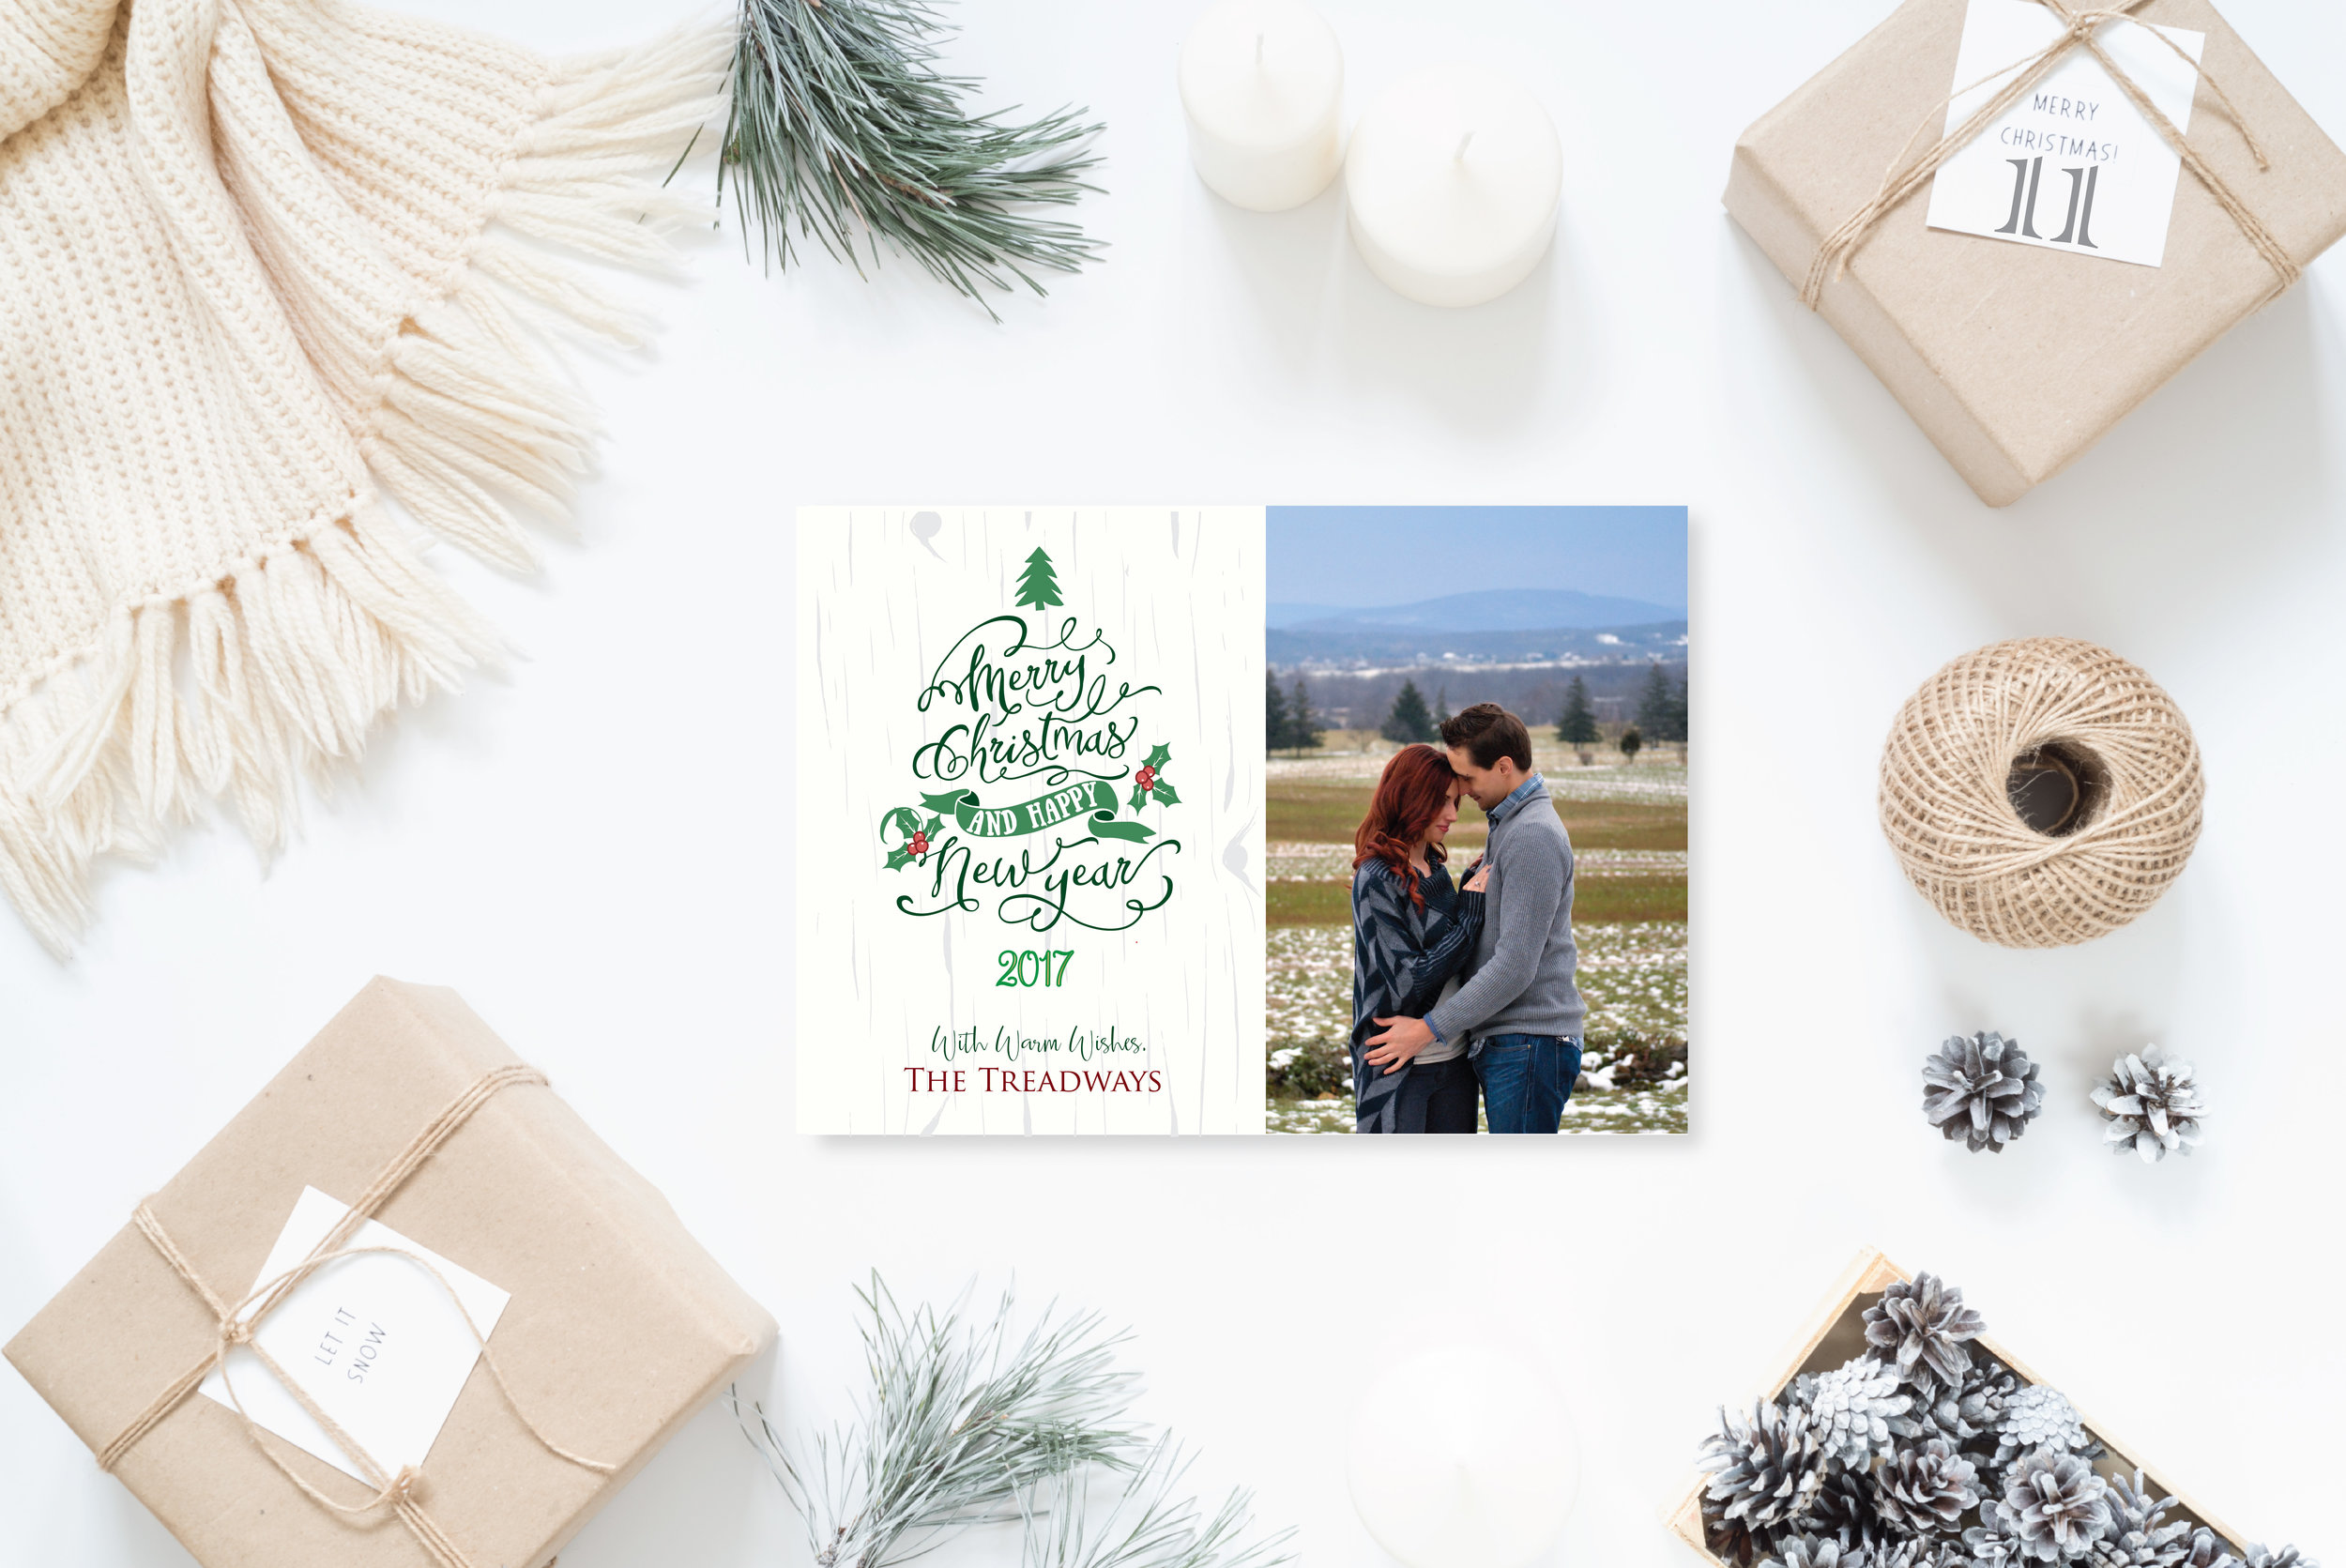 11- Styled Christmas Cards Holiday Cards 2017 2_Birch Merry Christmas.jpg